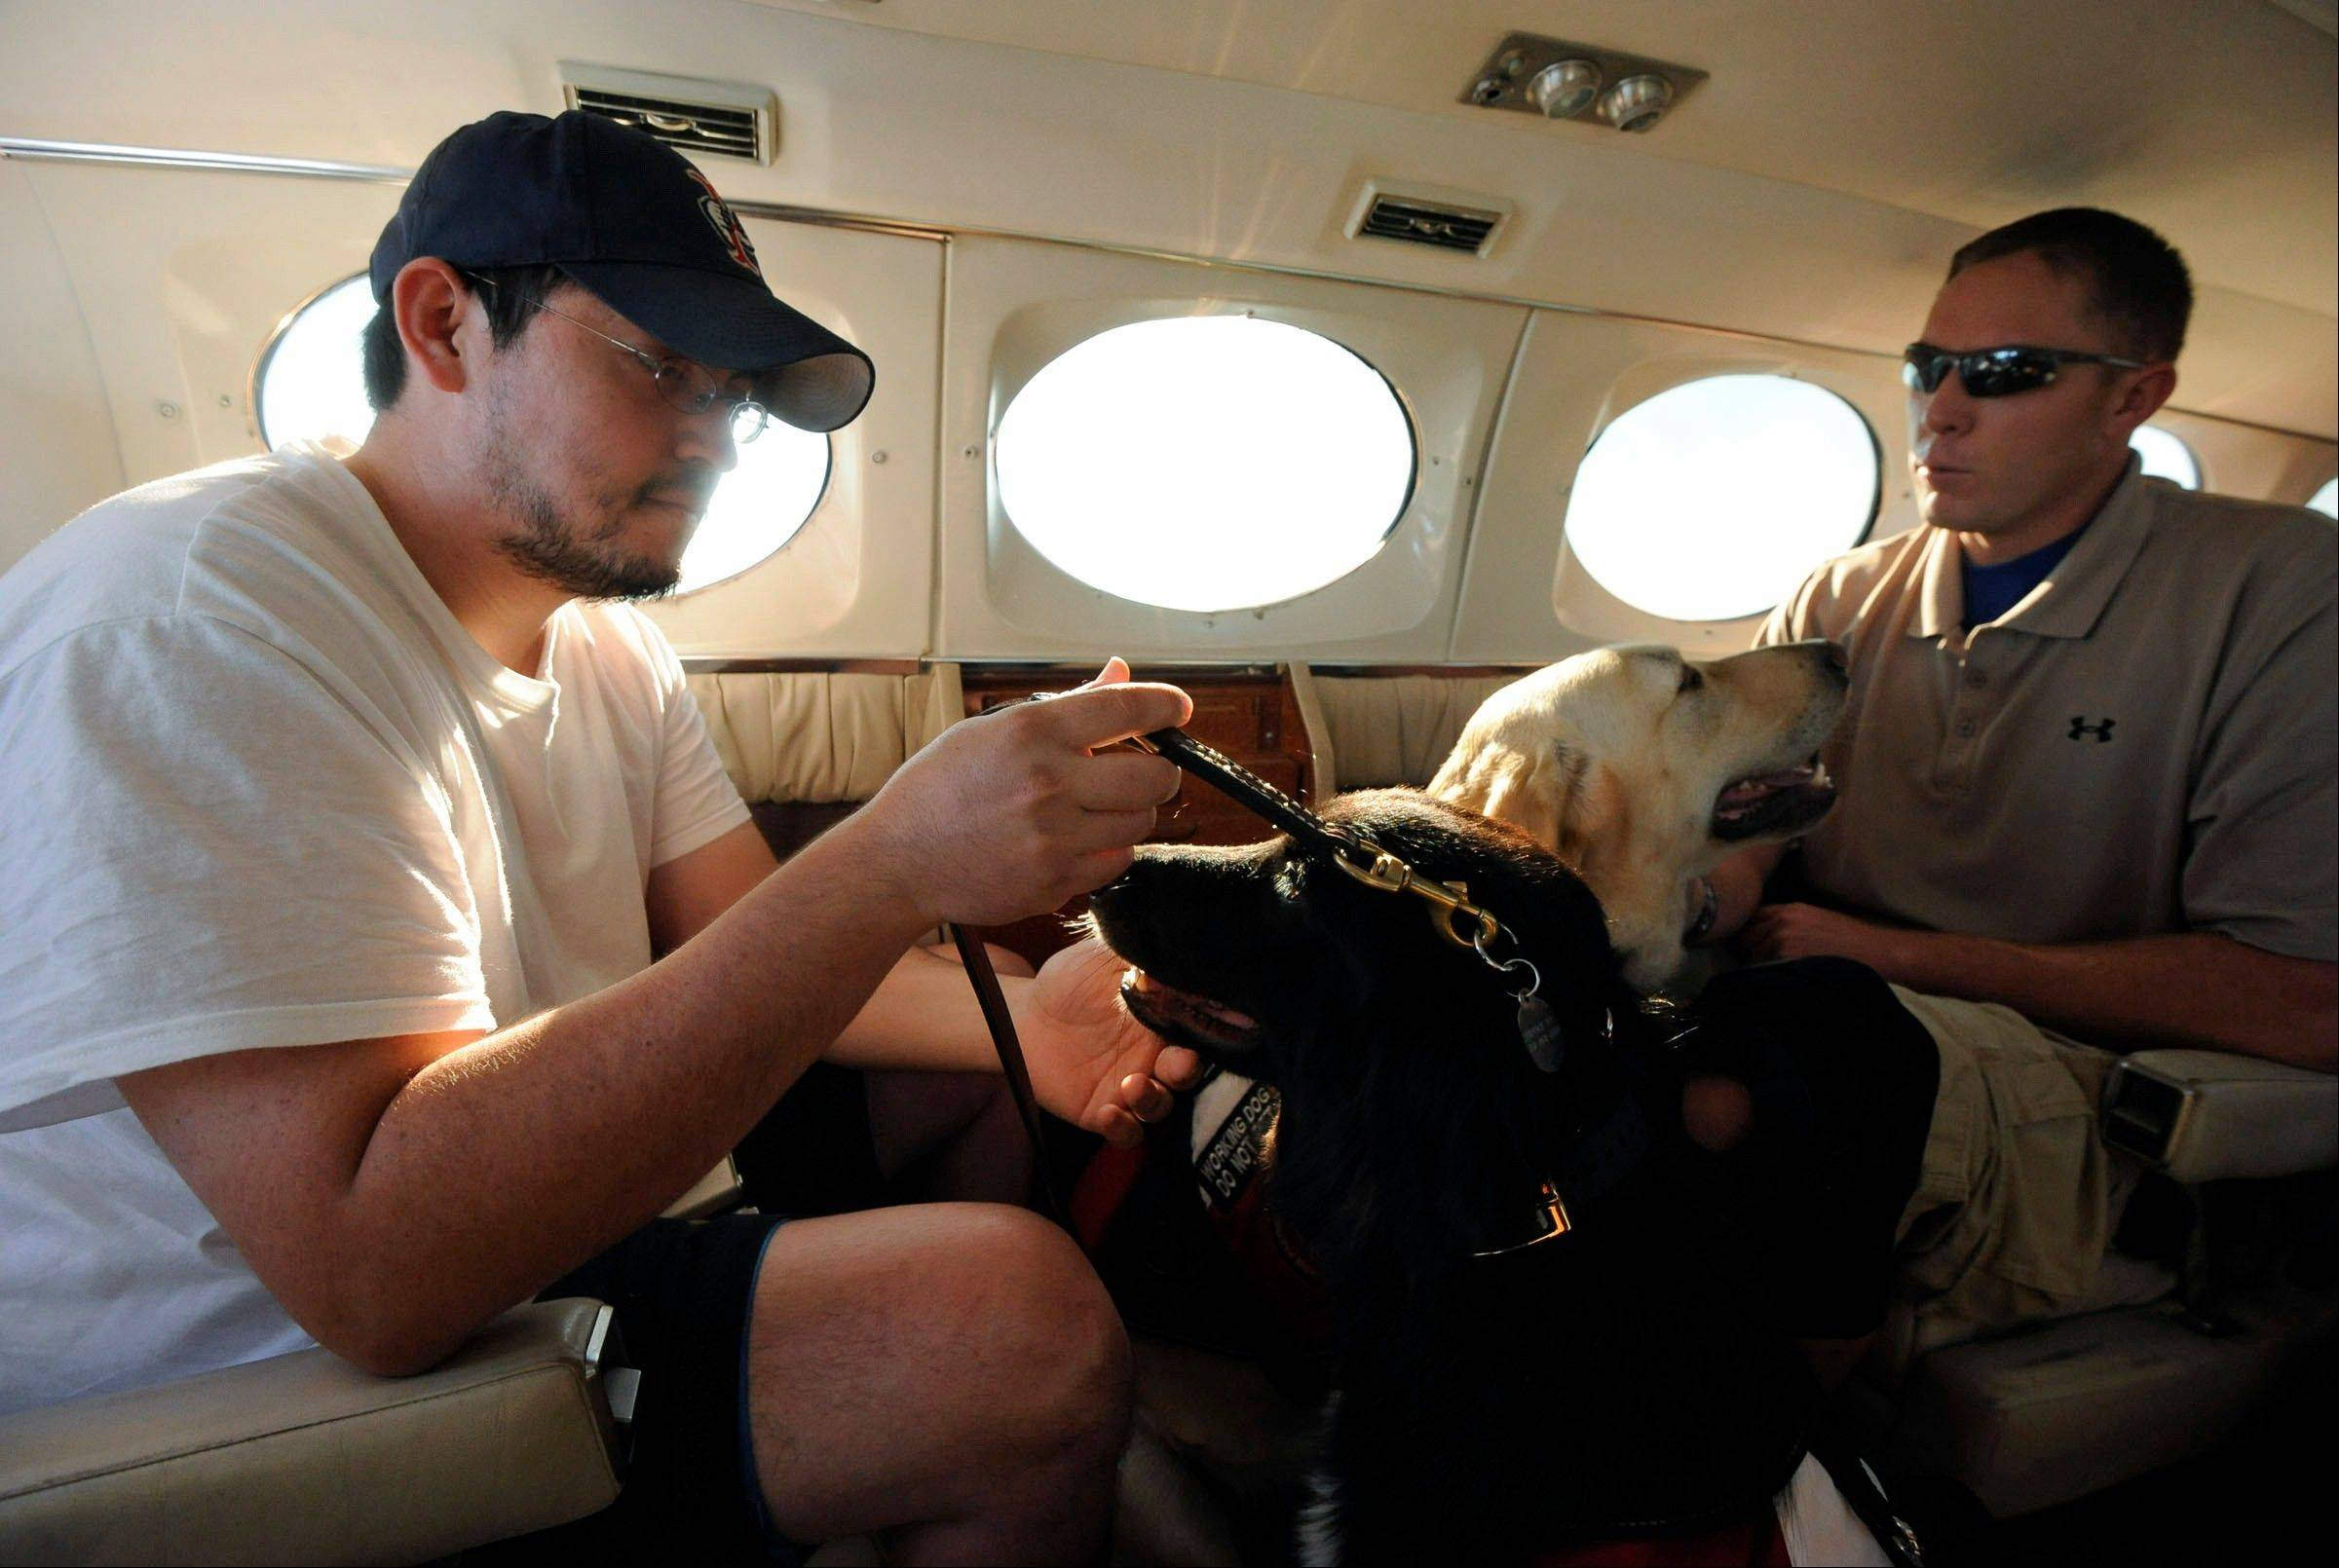 Luis Zaragoza, of Chicago, and Jason O. Brown of Murphysboro fly above Carbondale as part of a training exercise to practice flying with their service dogs, Cheyenne and Tonka, in Carbondale.